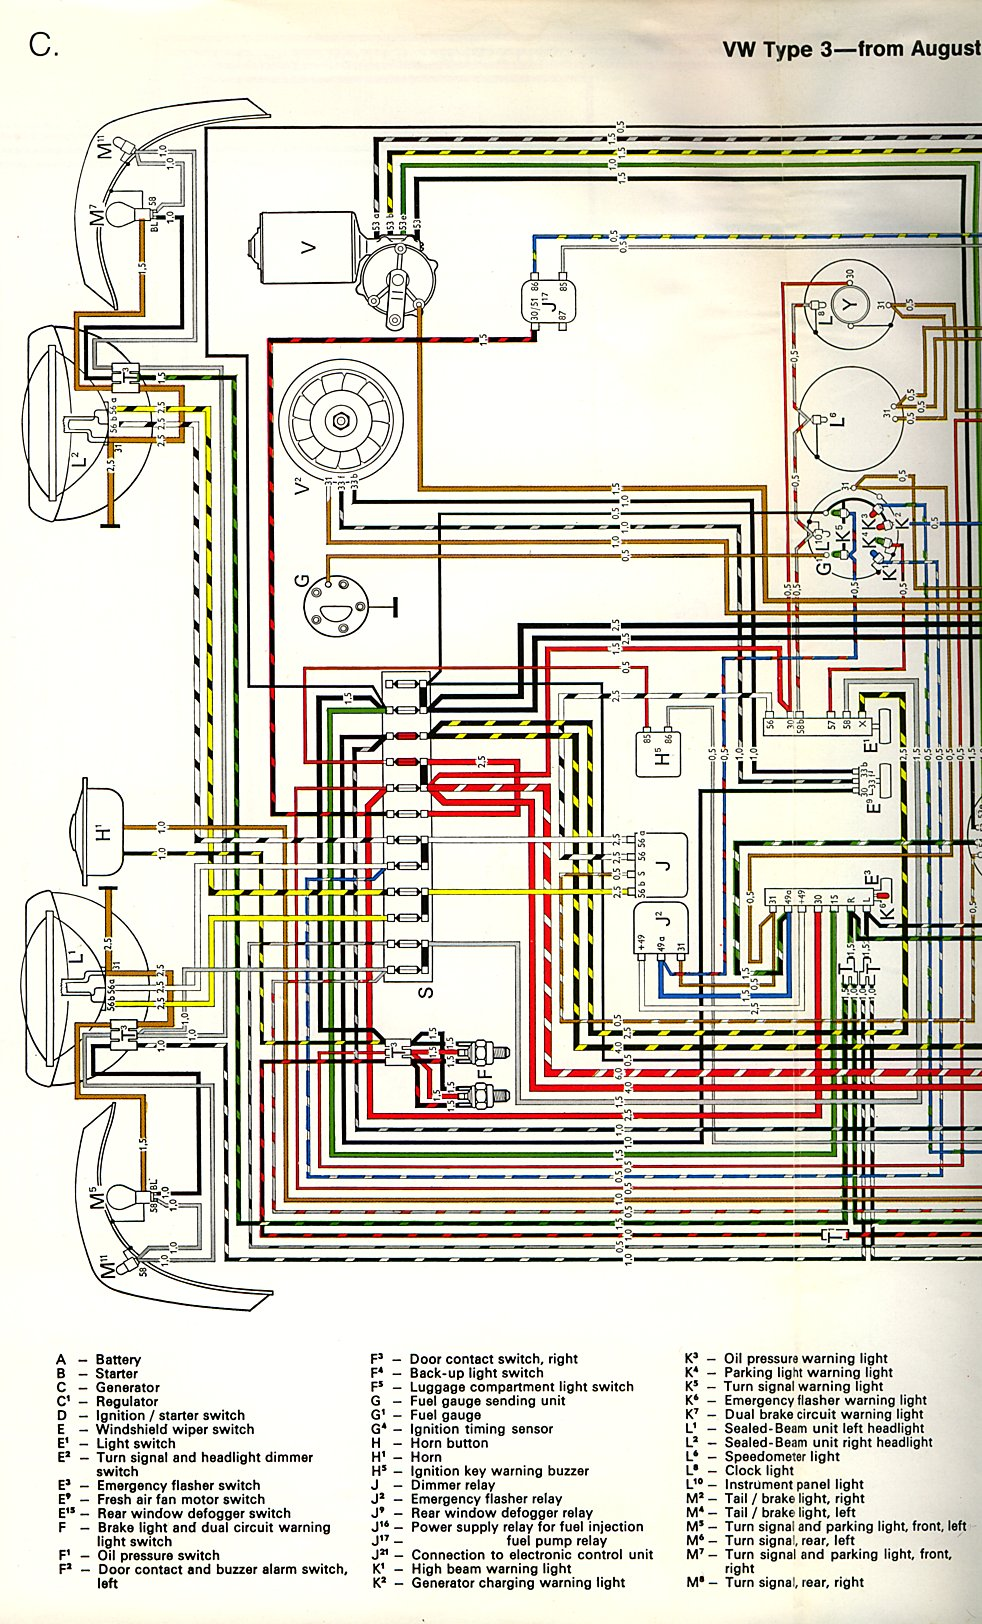 thesamba com type 3 wiring diagrams rh thesamba com 72 VW Wiring Diagram VW  Voltage Regulator Wiring